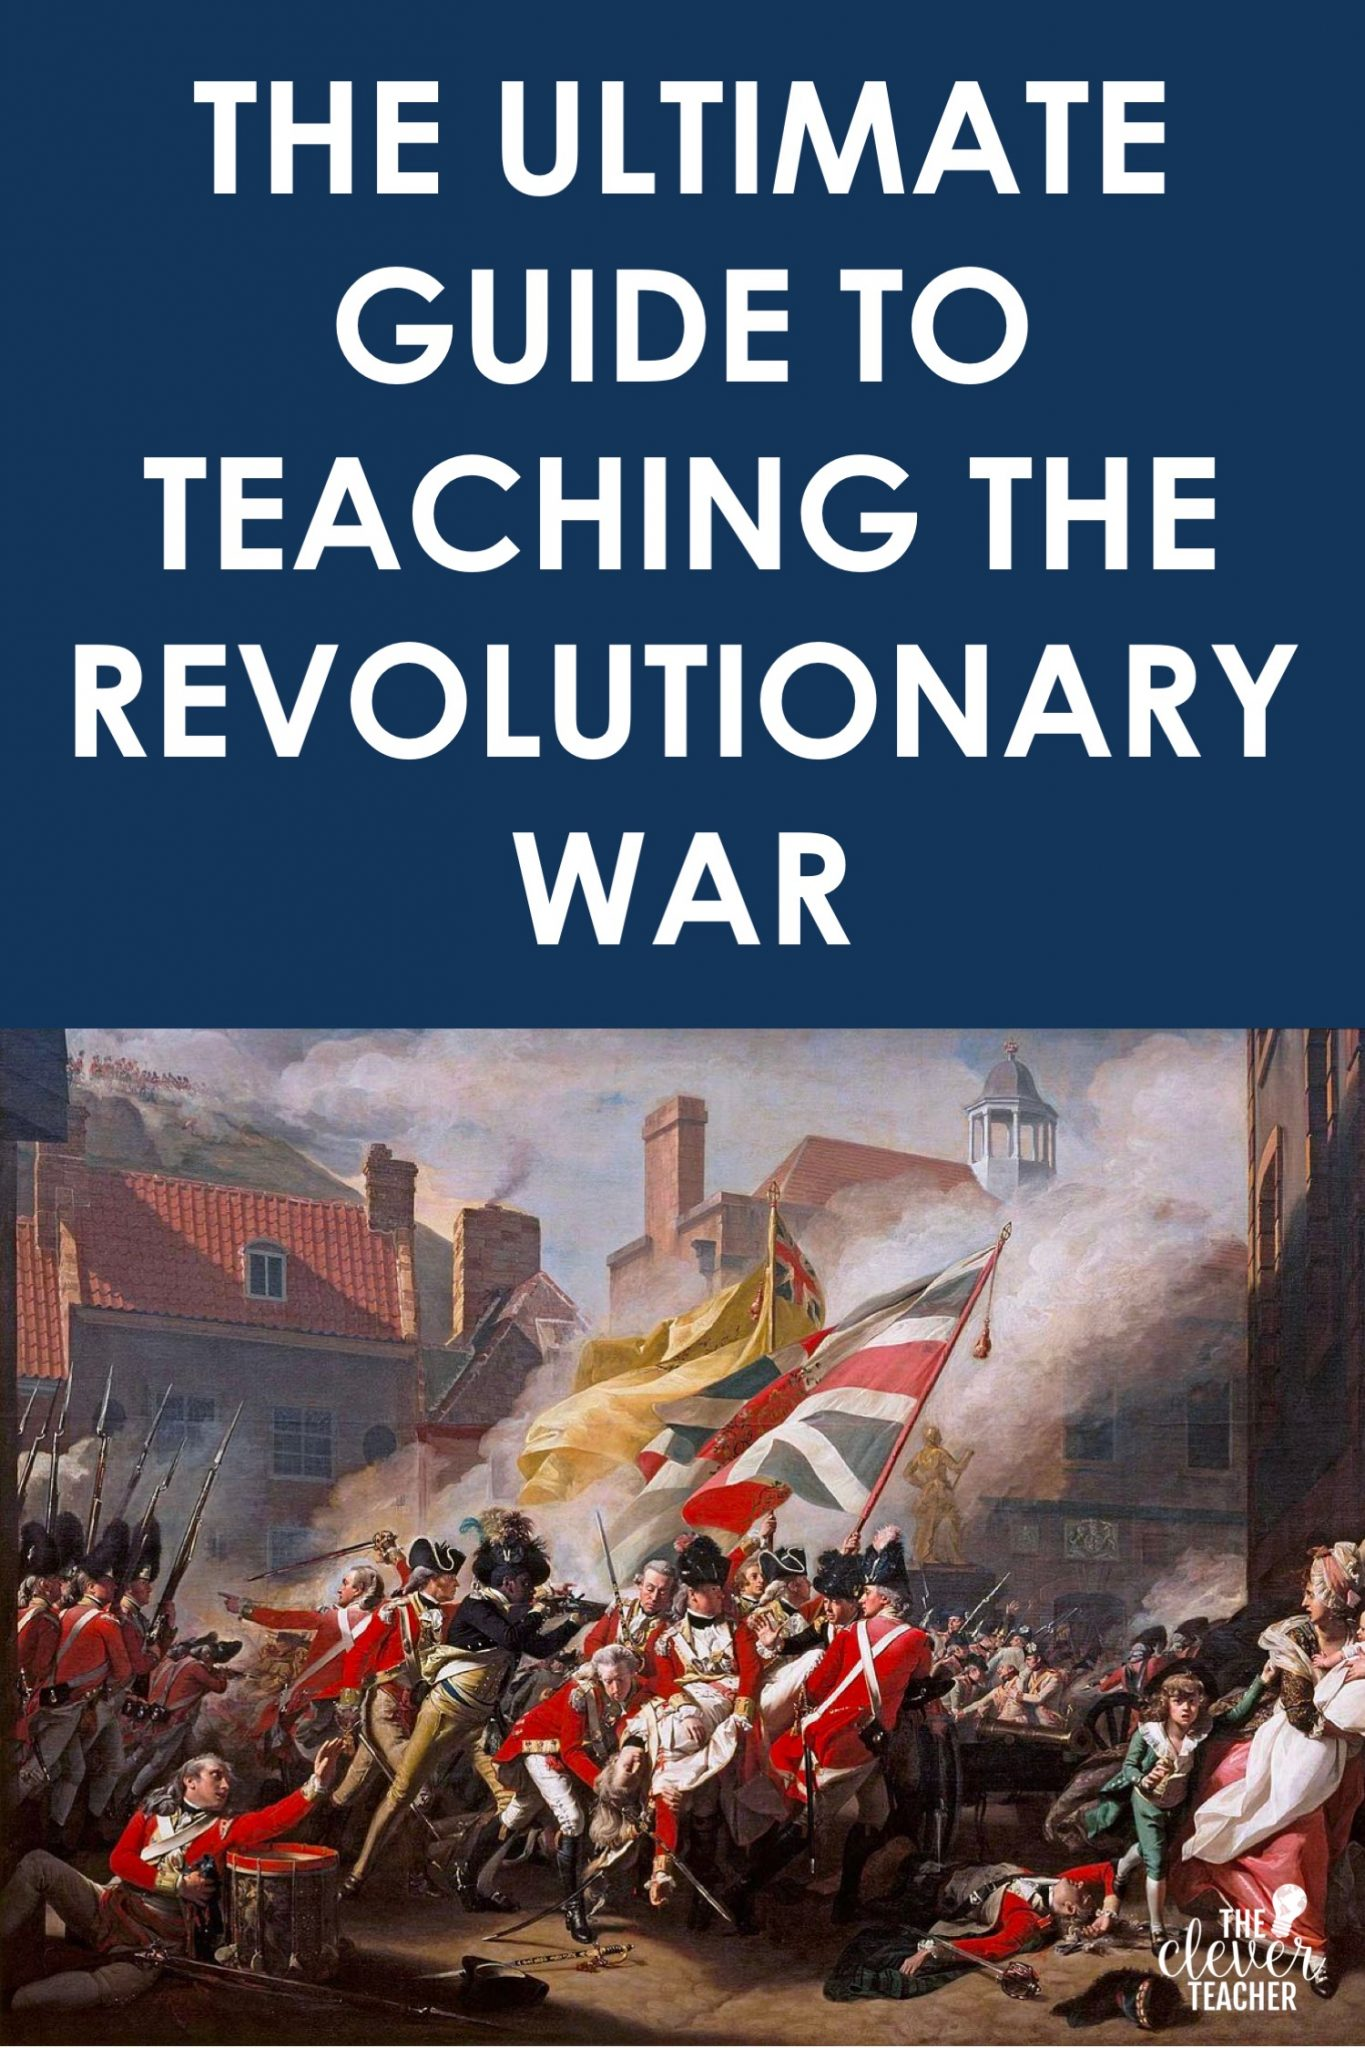 medium resolution of The Ultimate Guide to Teaching the Revolutionary War   The Clever Teacher